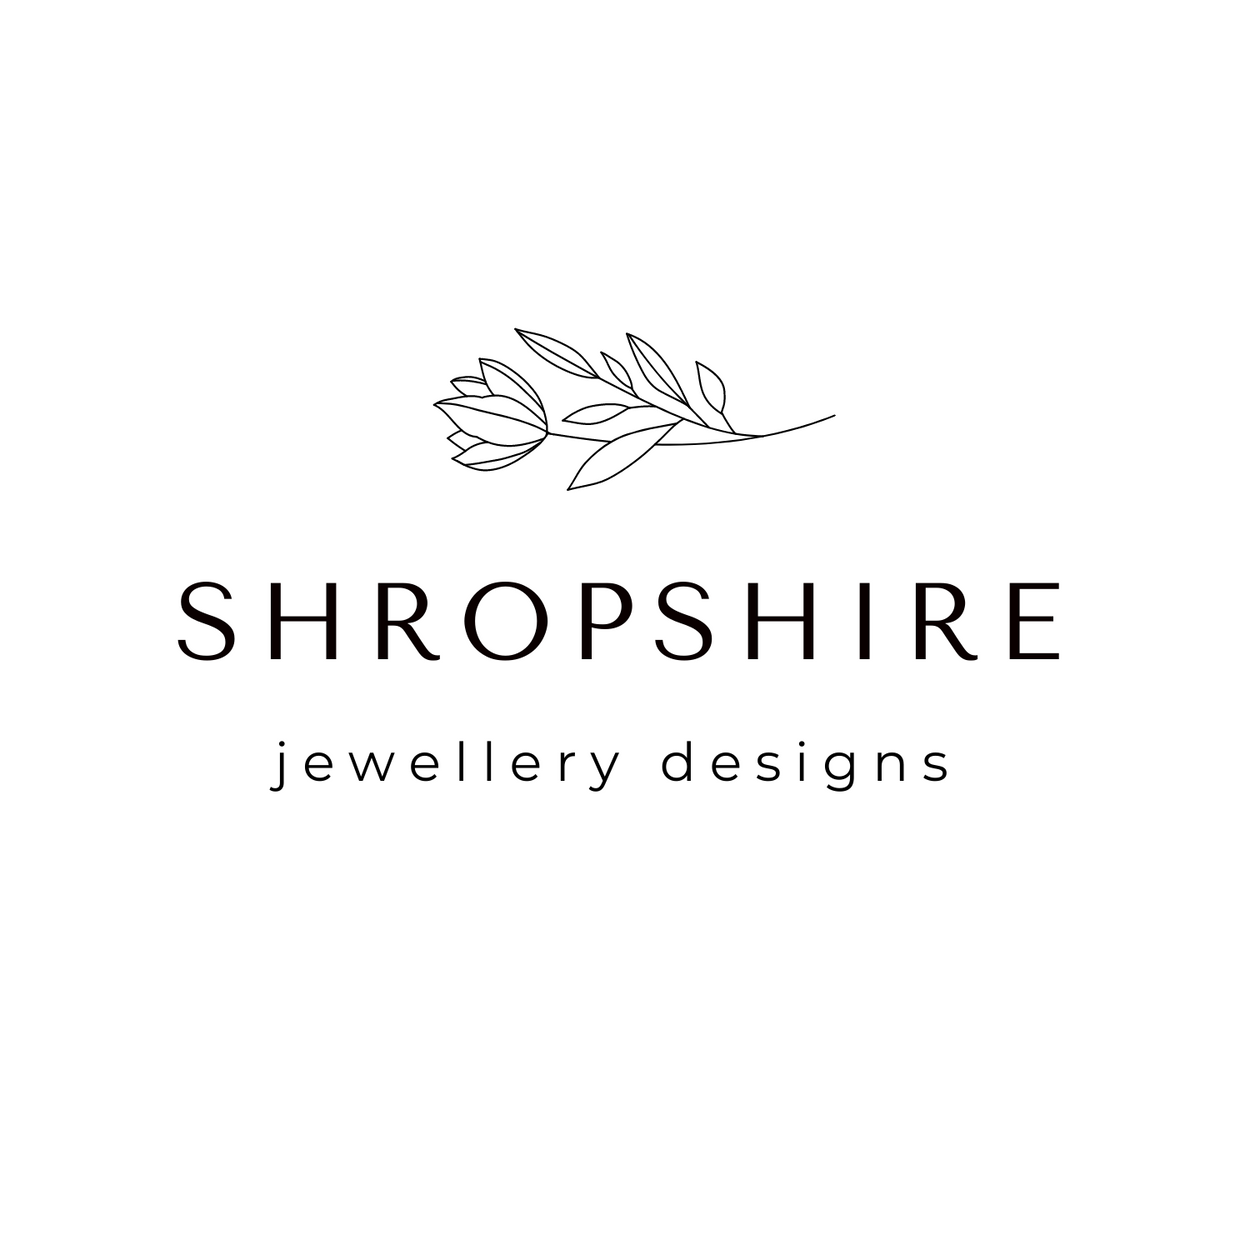 www.shropshirejewellerydesigns.co.uk